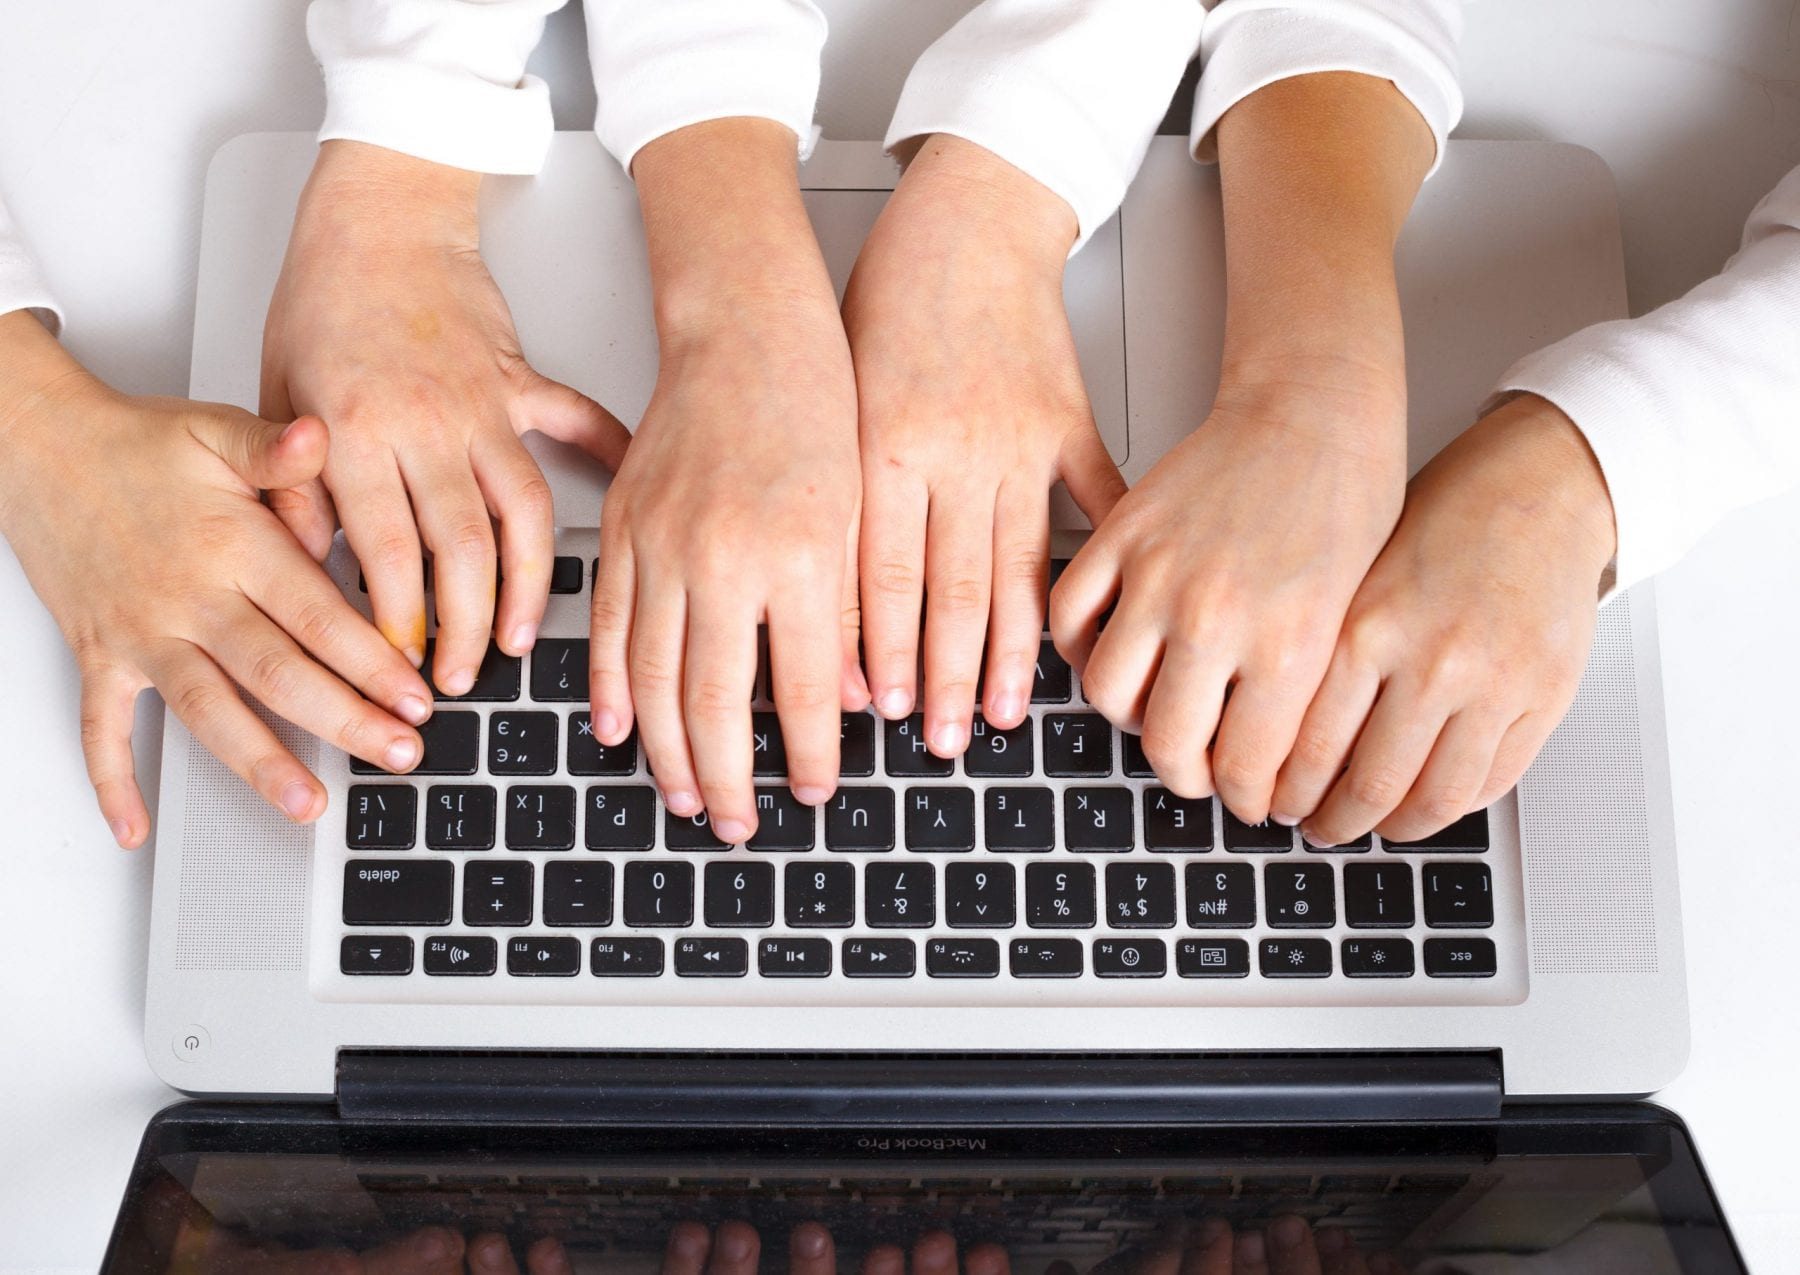 6 typing on a keyboard